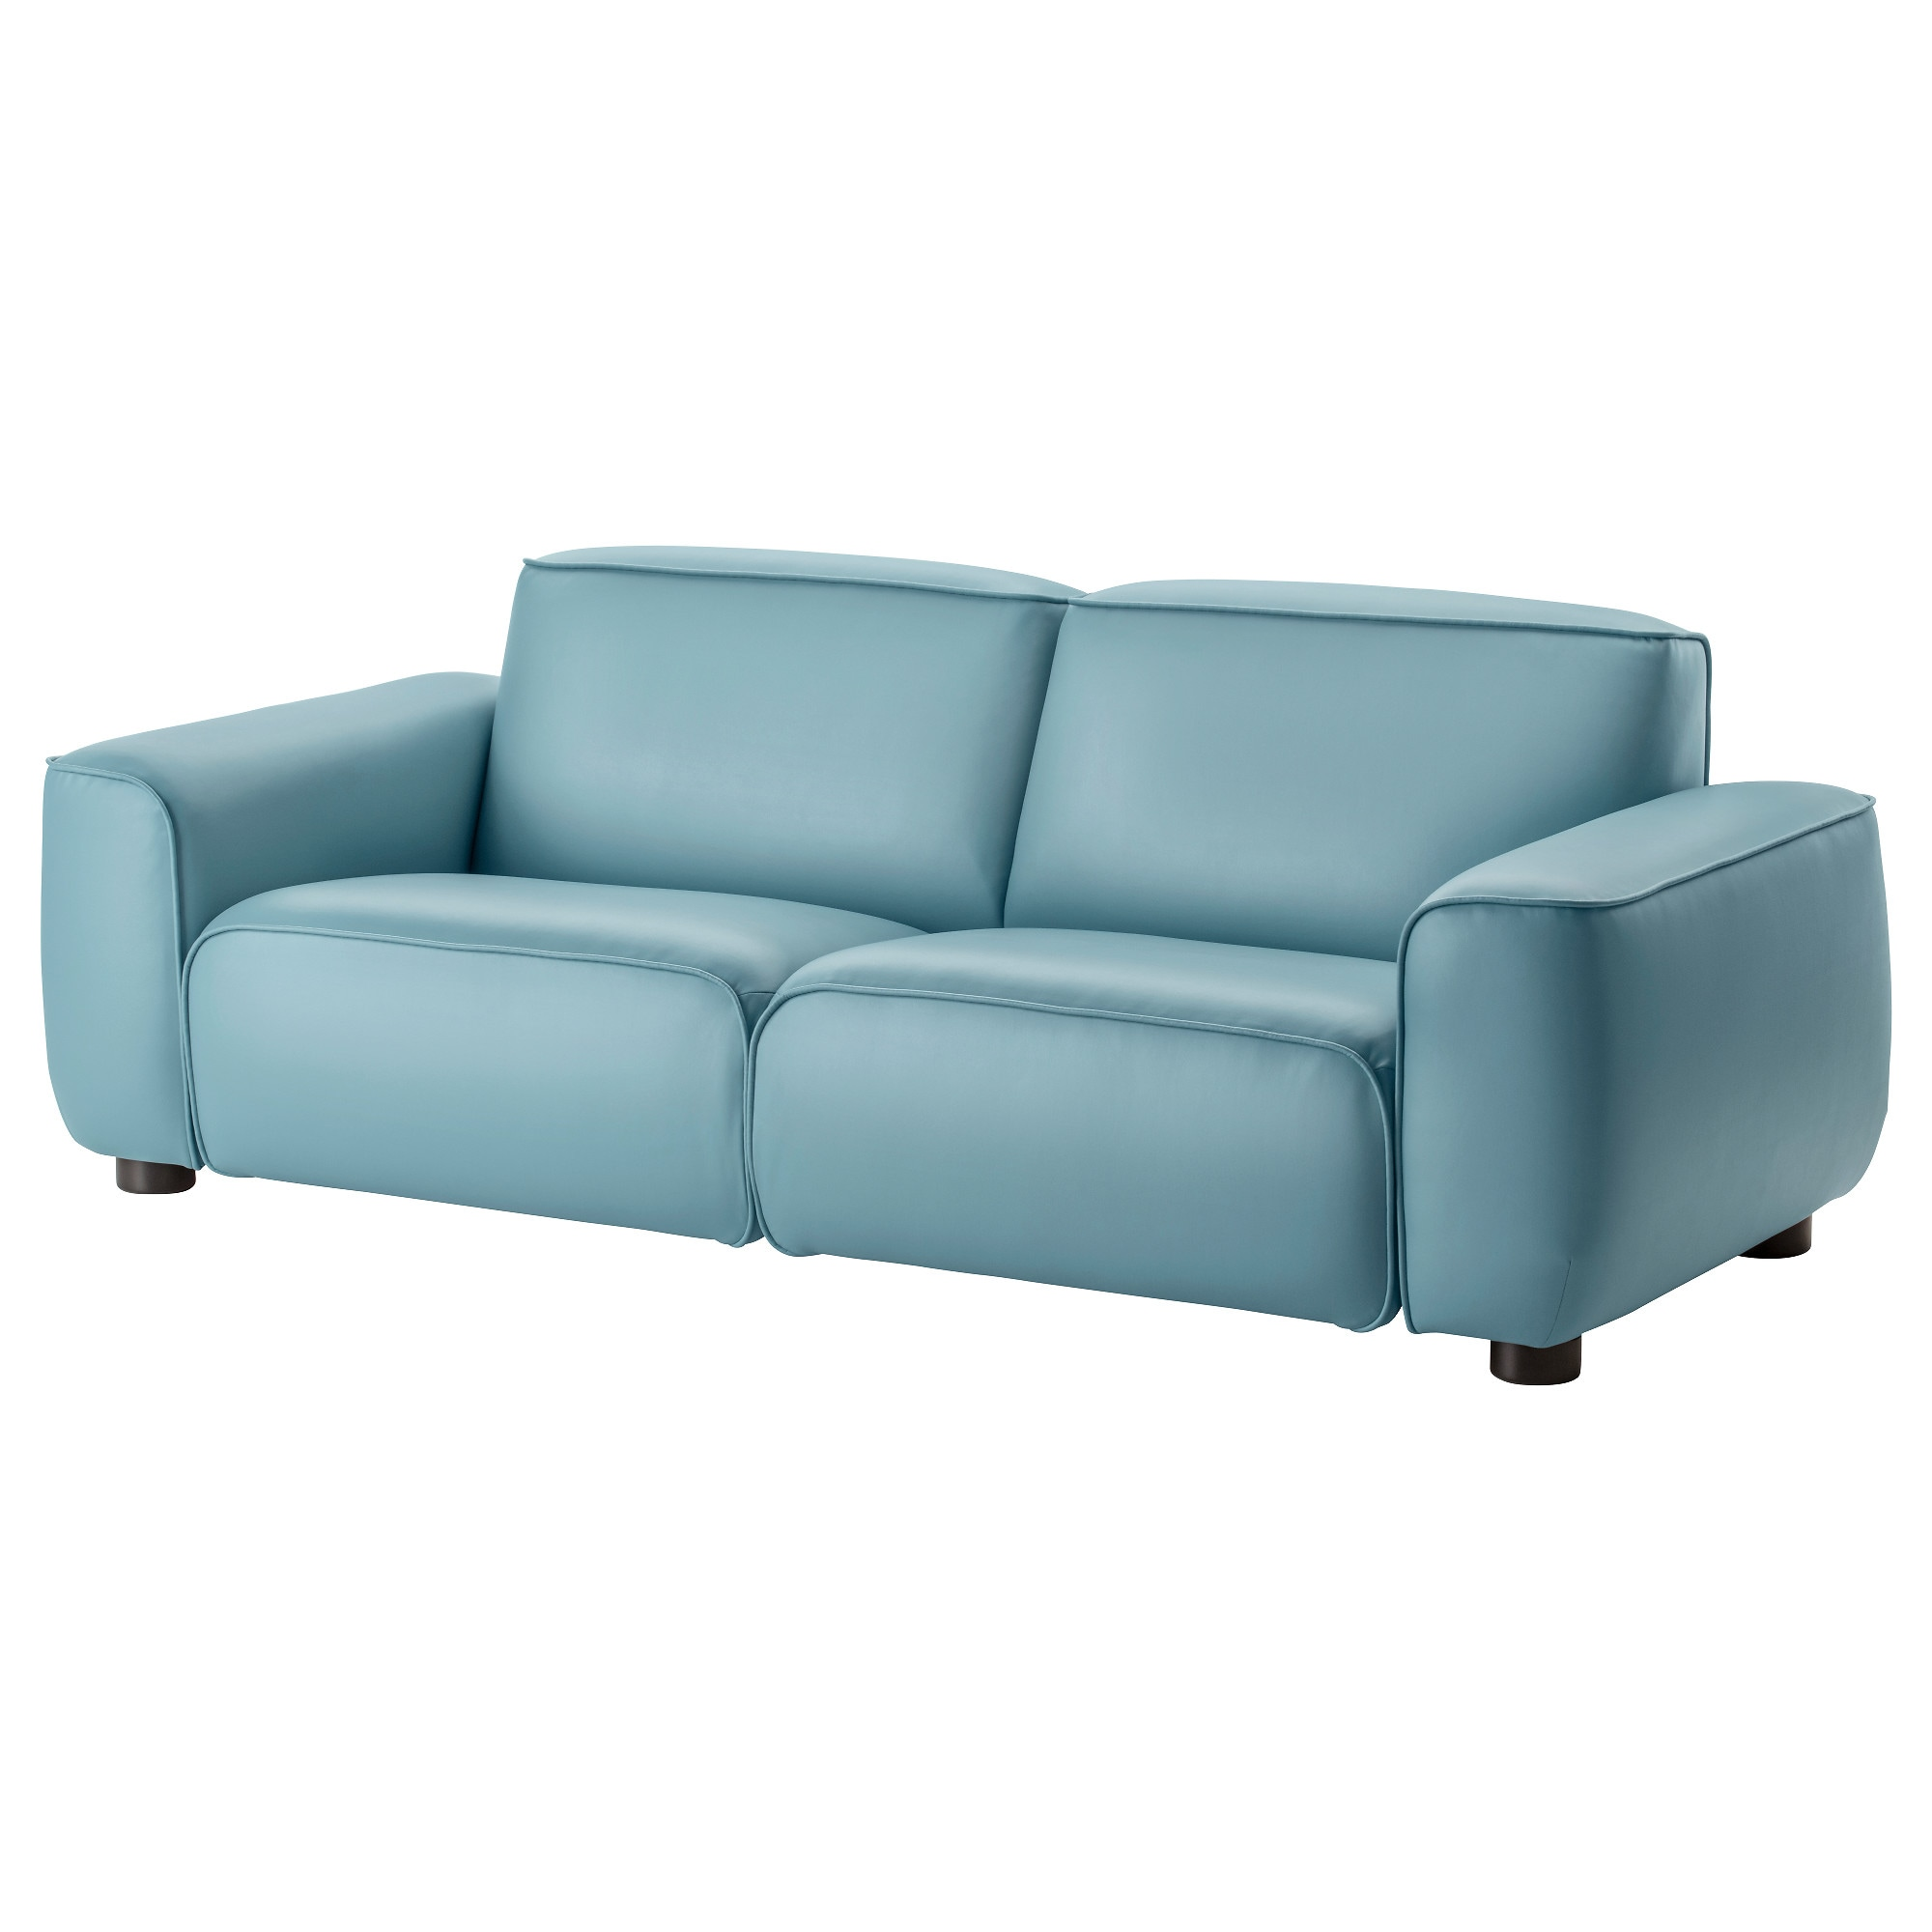 Blue leather sofa ikea thesofa for Blue leather sofa